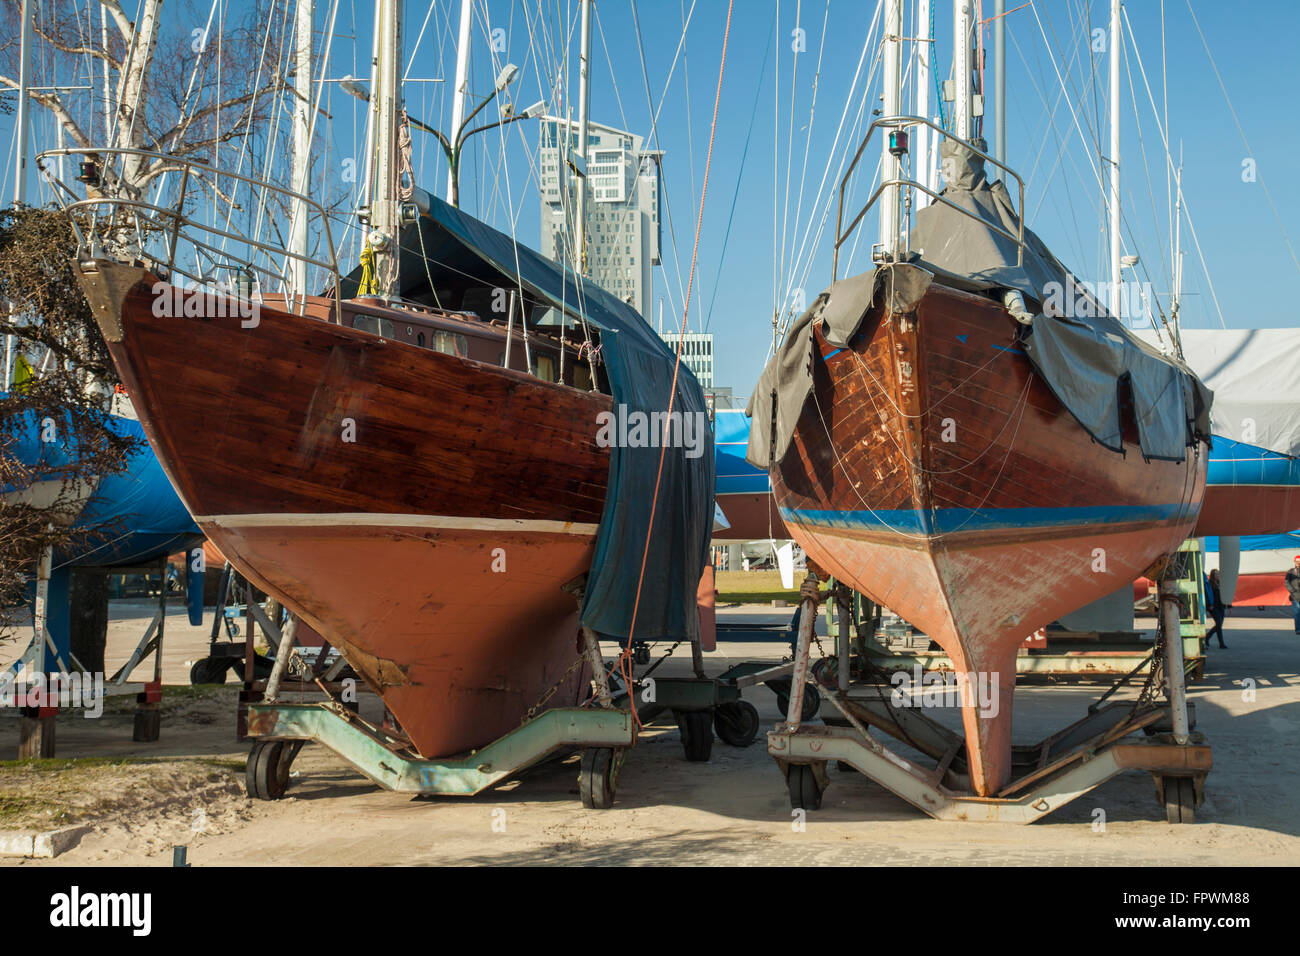 Yachts aground in Gdynia, Poland. - Stock Image